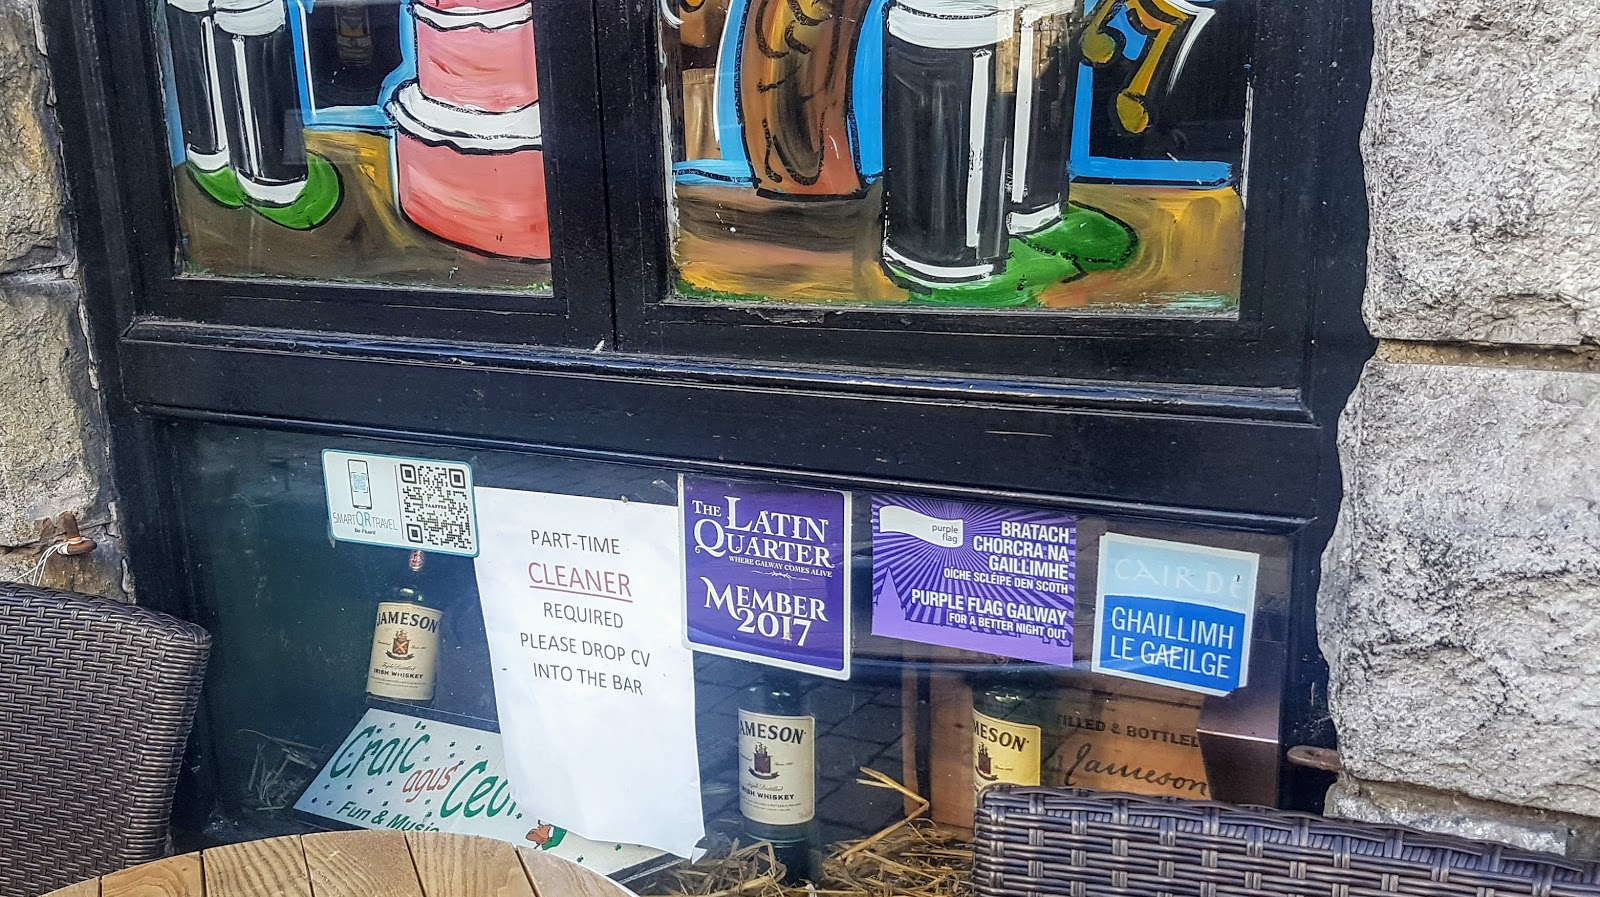 Other signs in the same window:  Latin Quarter member 2017, Ghaillimh le Gailege, Purple flag galway, Jamieson whiskey, Craic agus ceol (obscured)